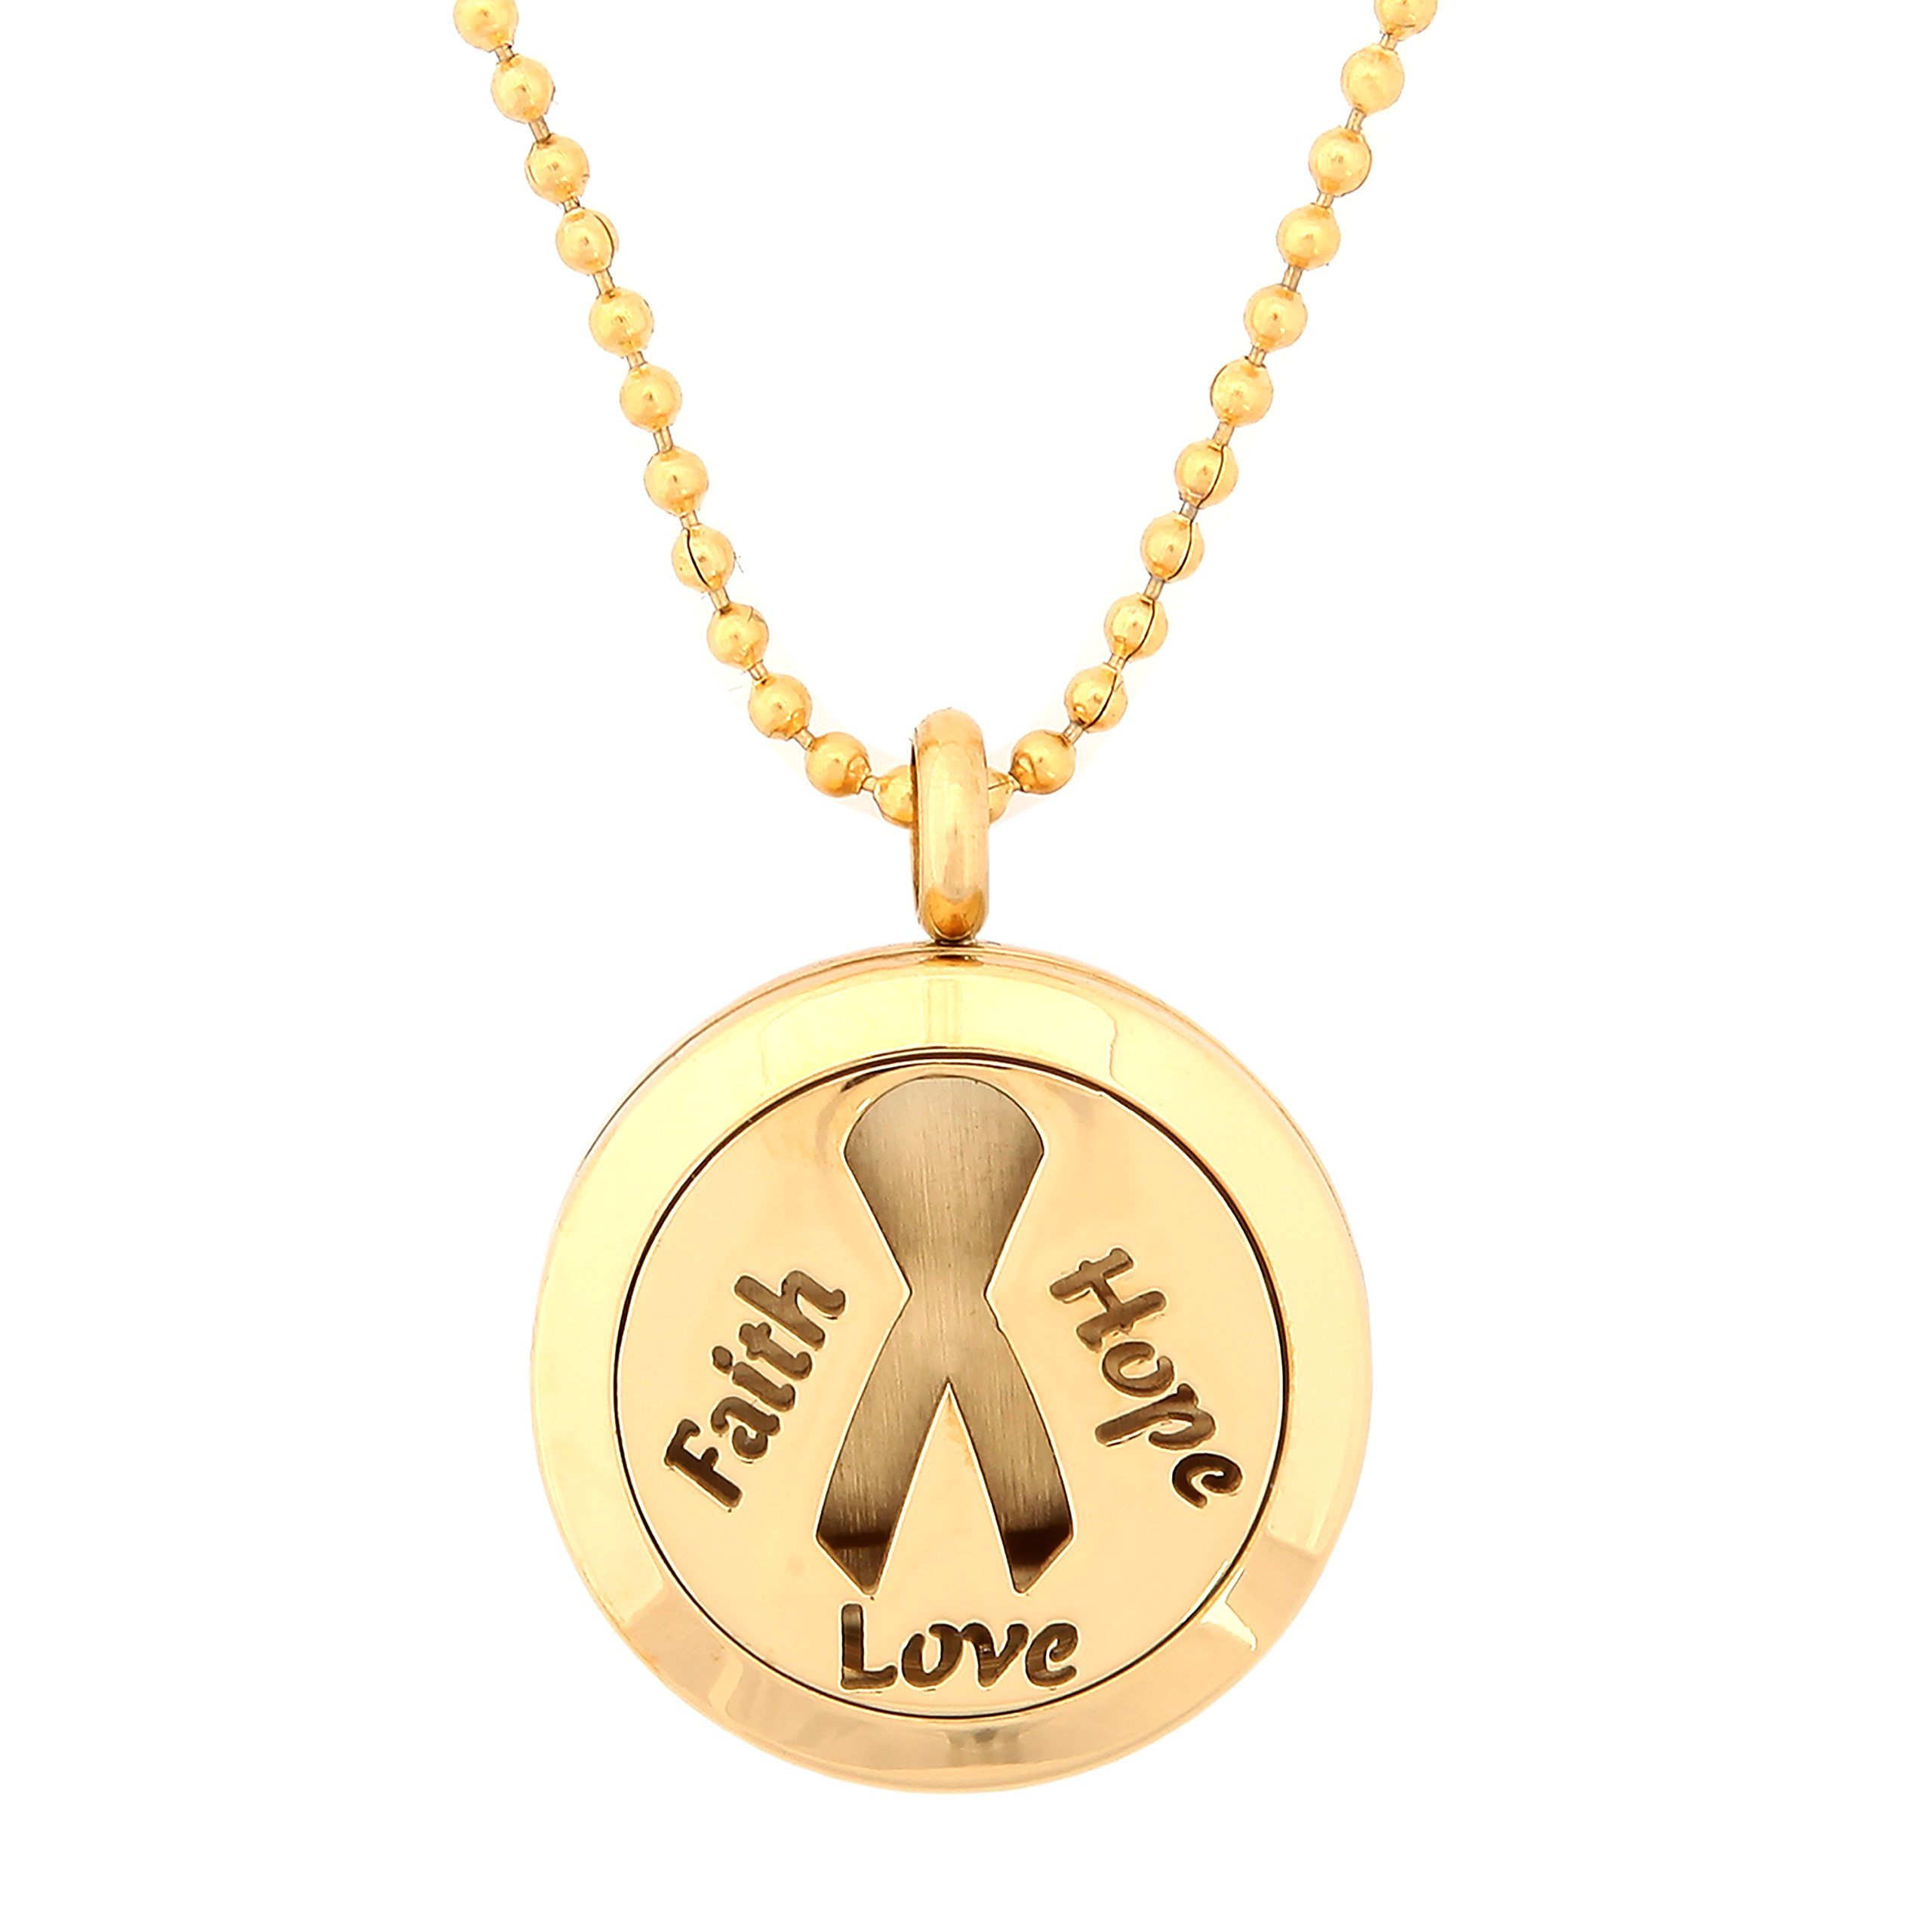 Gold Cancer Awareness Ribbon Faith Hope Love Aromatherapy Essential Oil Diffuser Locket Pendant Jewelry Gift Set with 20'' & 24'' Chains and Multi-Colored Oil Pads (Gold)